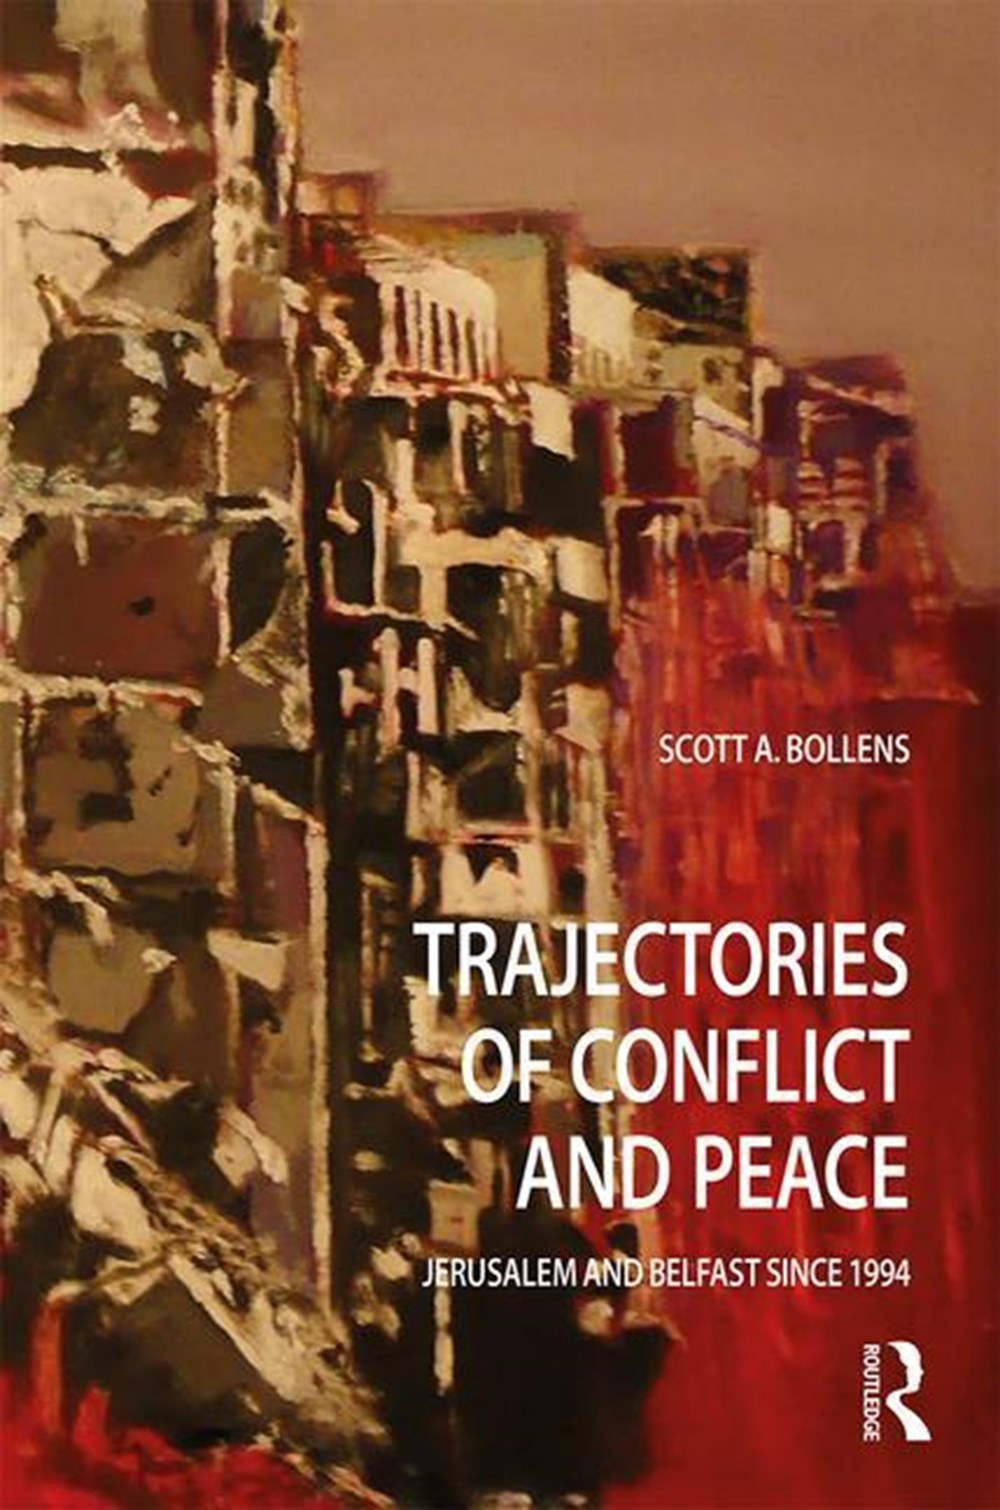 Trajectories of Conflict and Peace Jerusalem and Belfast Since 1994